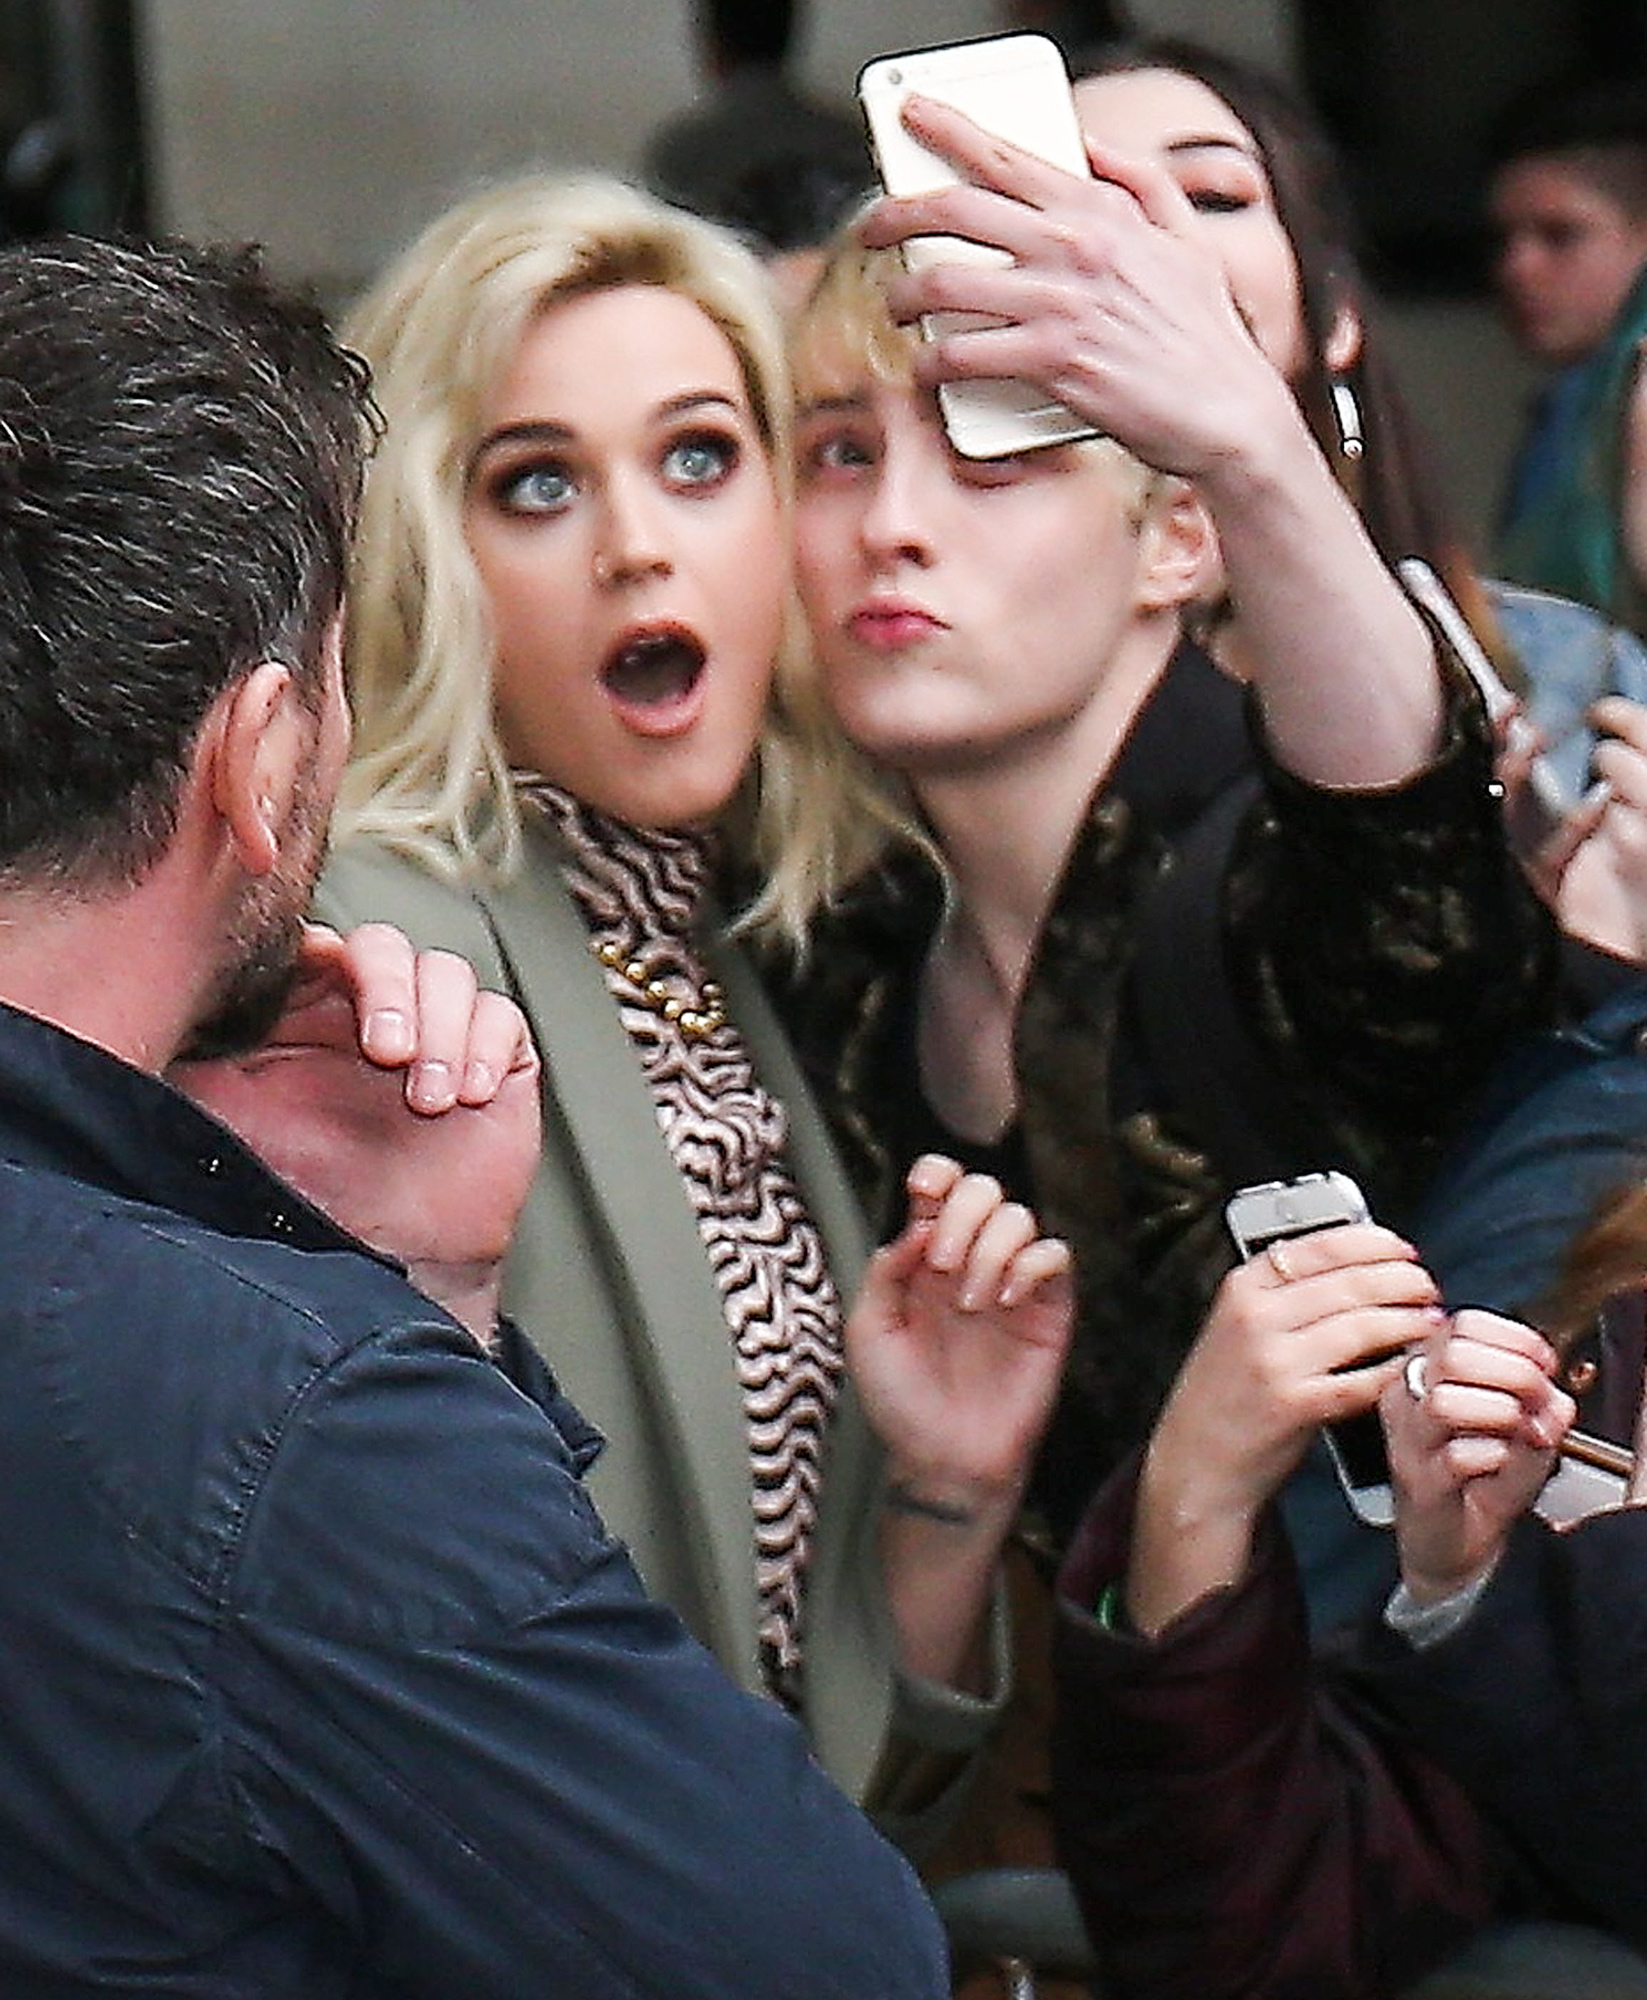 Katy Perry Greeting Her Fans At BBC Radio 1